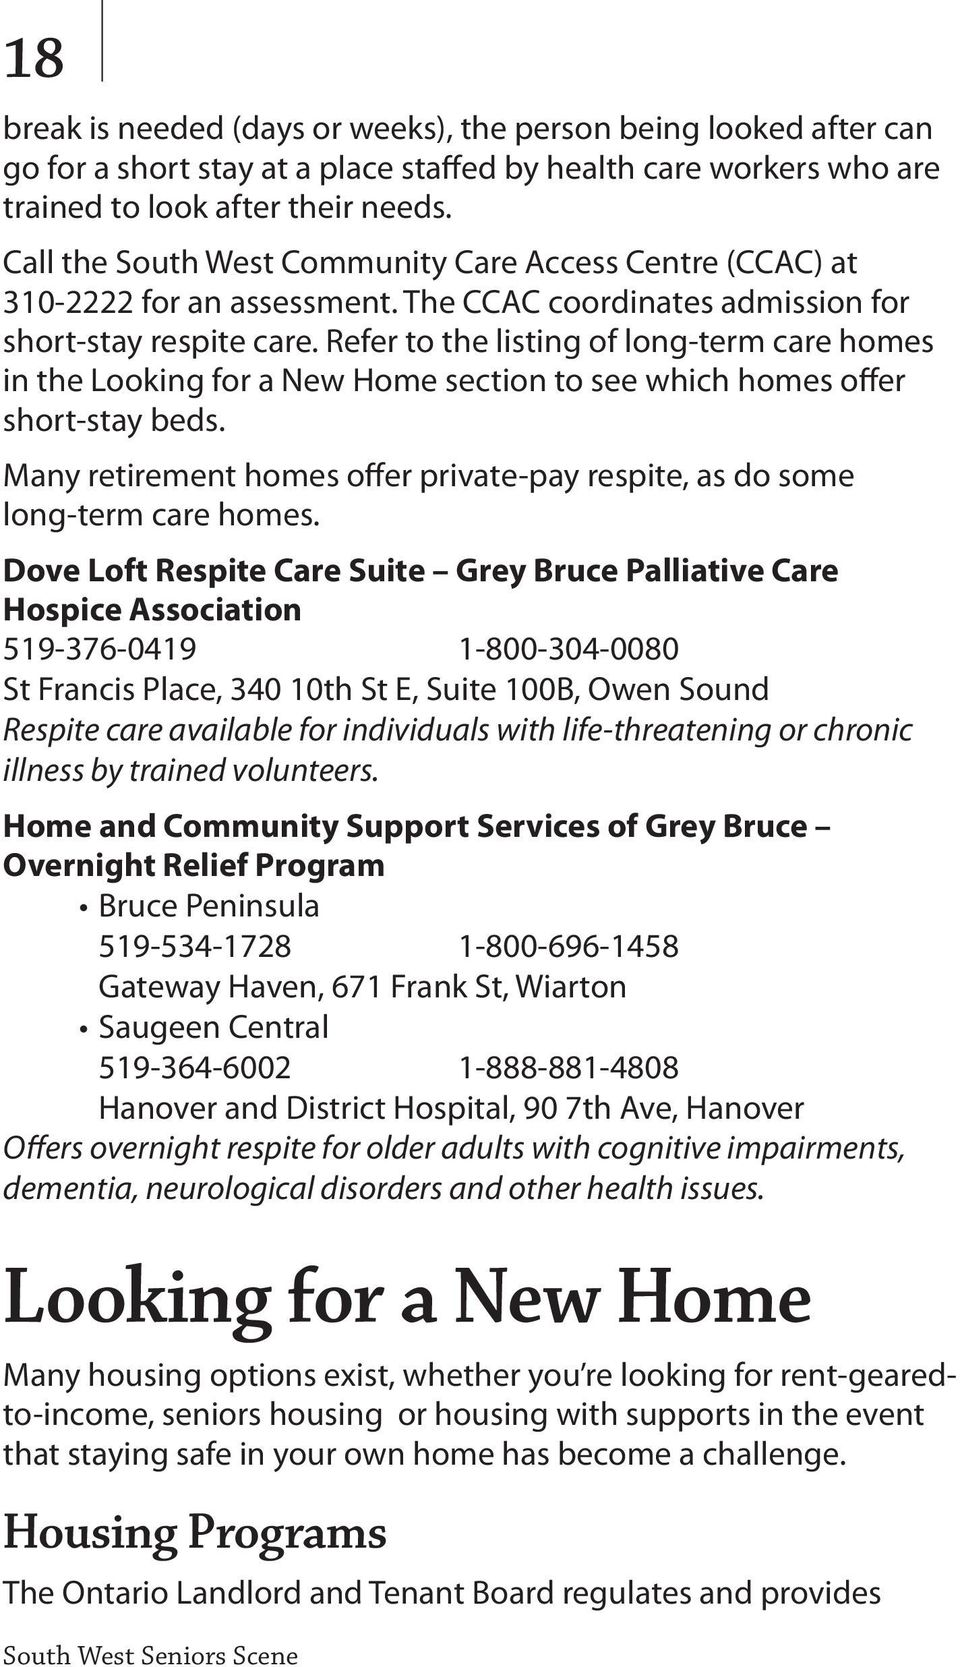 Refer to the listing of long-term care homes in the Looking for a New Home section to see which homes offer short-stay beds.